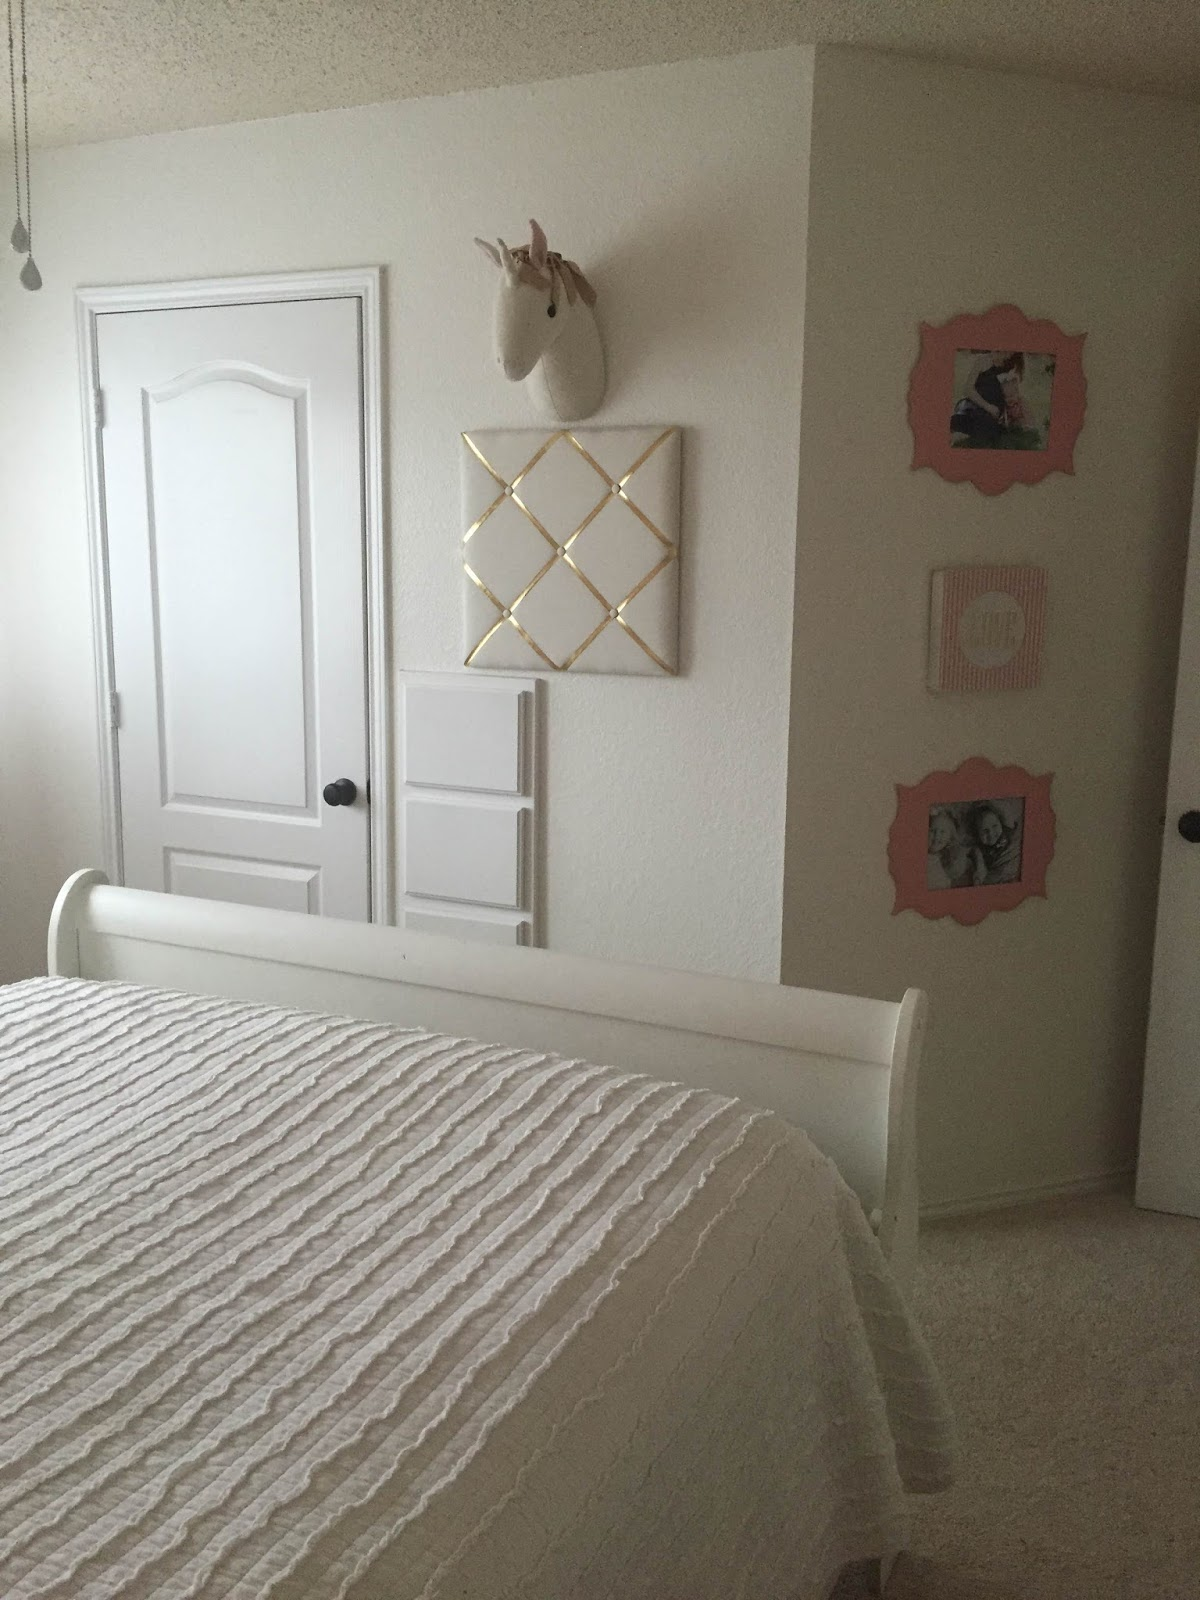 Fabulous Bed Craigslist Dresser Craiglist painted in Annie Sloan Pure white by me Pink Bird Lamp Home Goods Curtains Target Sewed pink pom pom from Hobby